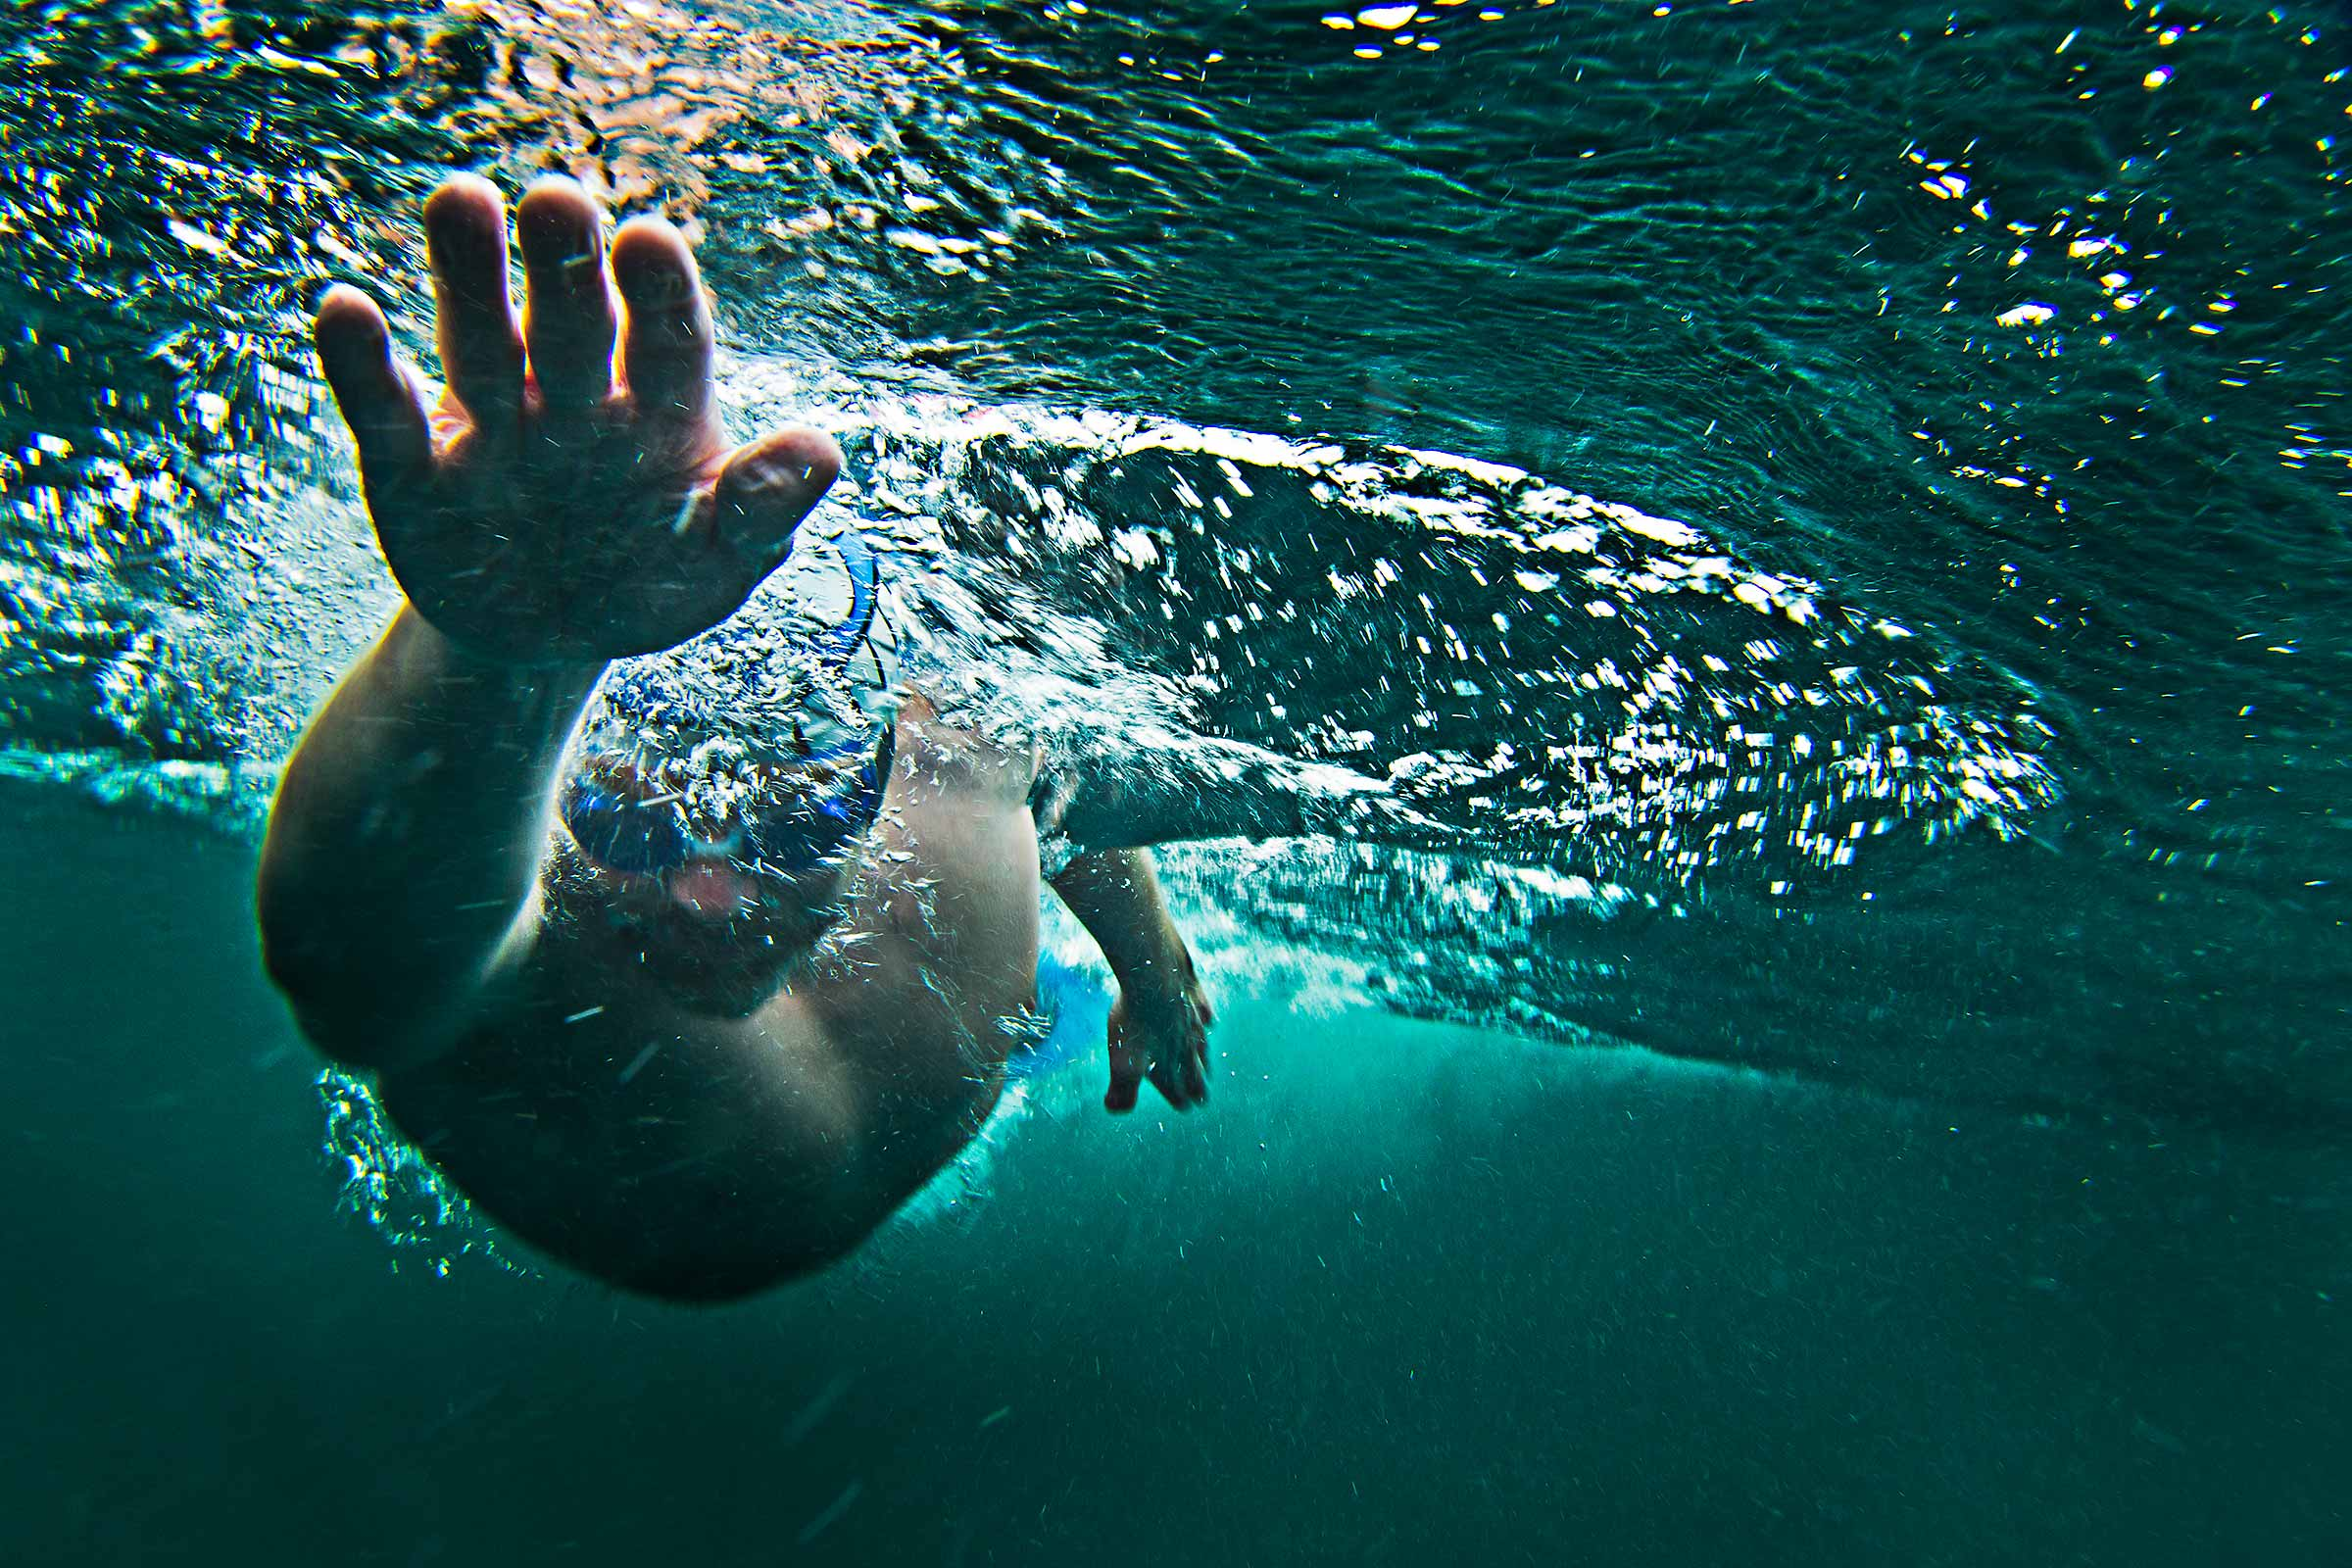 underwater action shot of long distance open water swimmer in Scotland